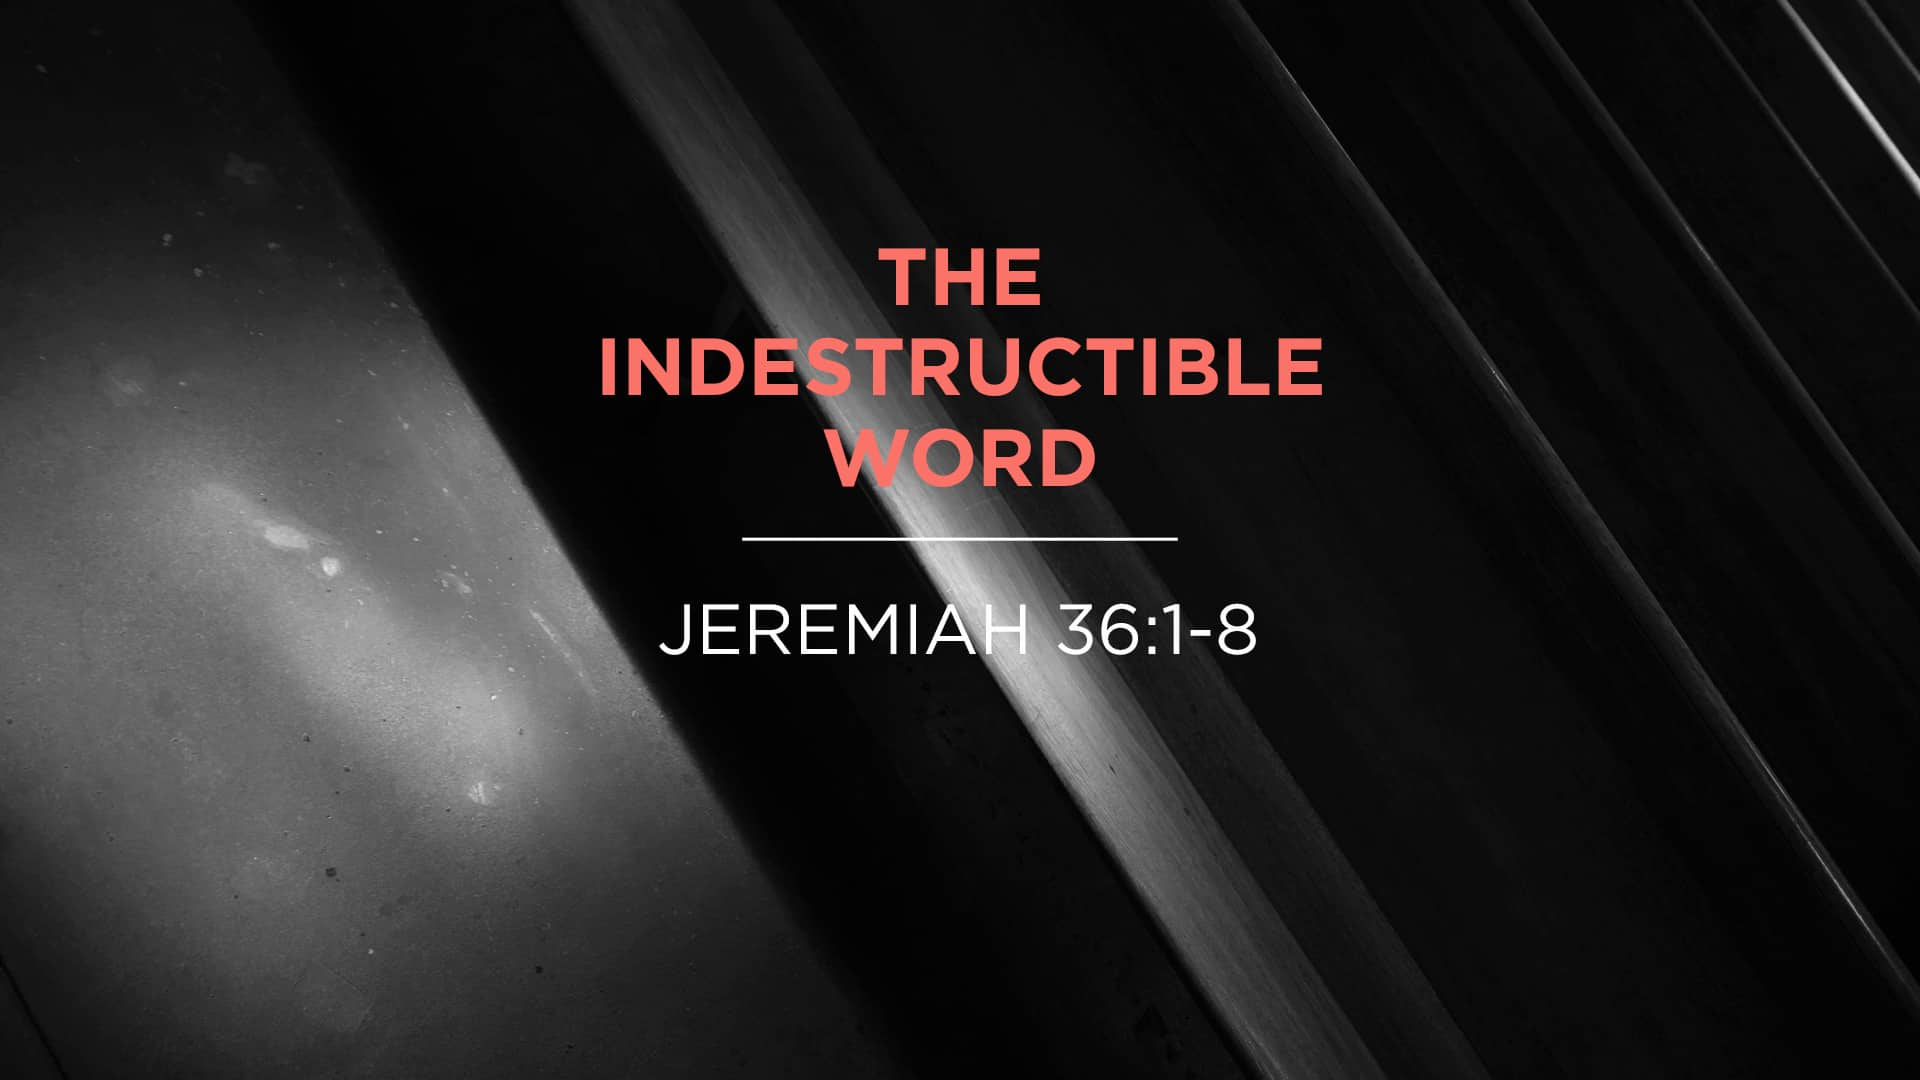 The Indestructible Word